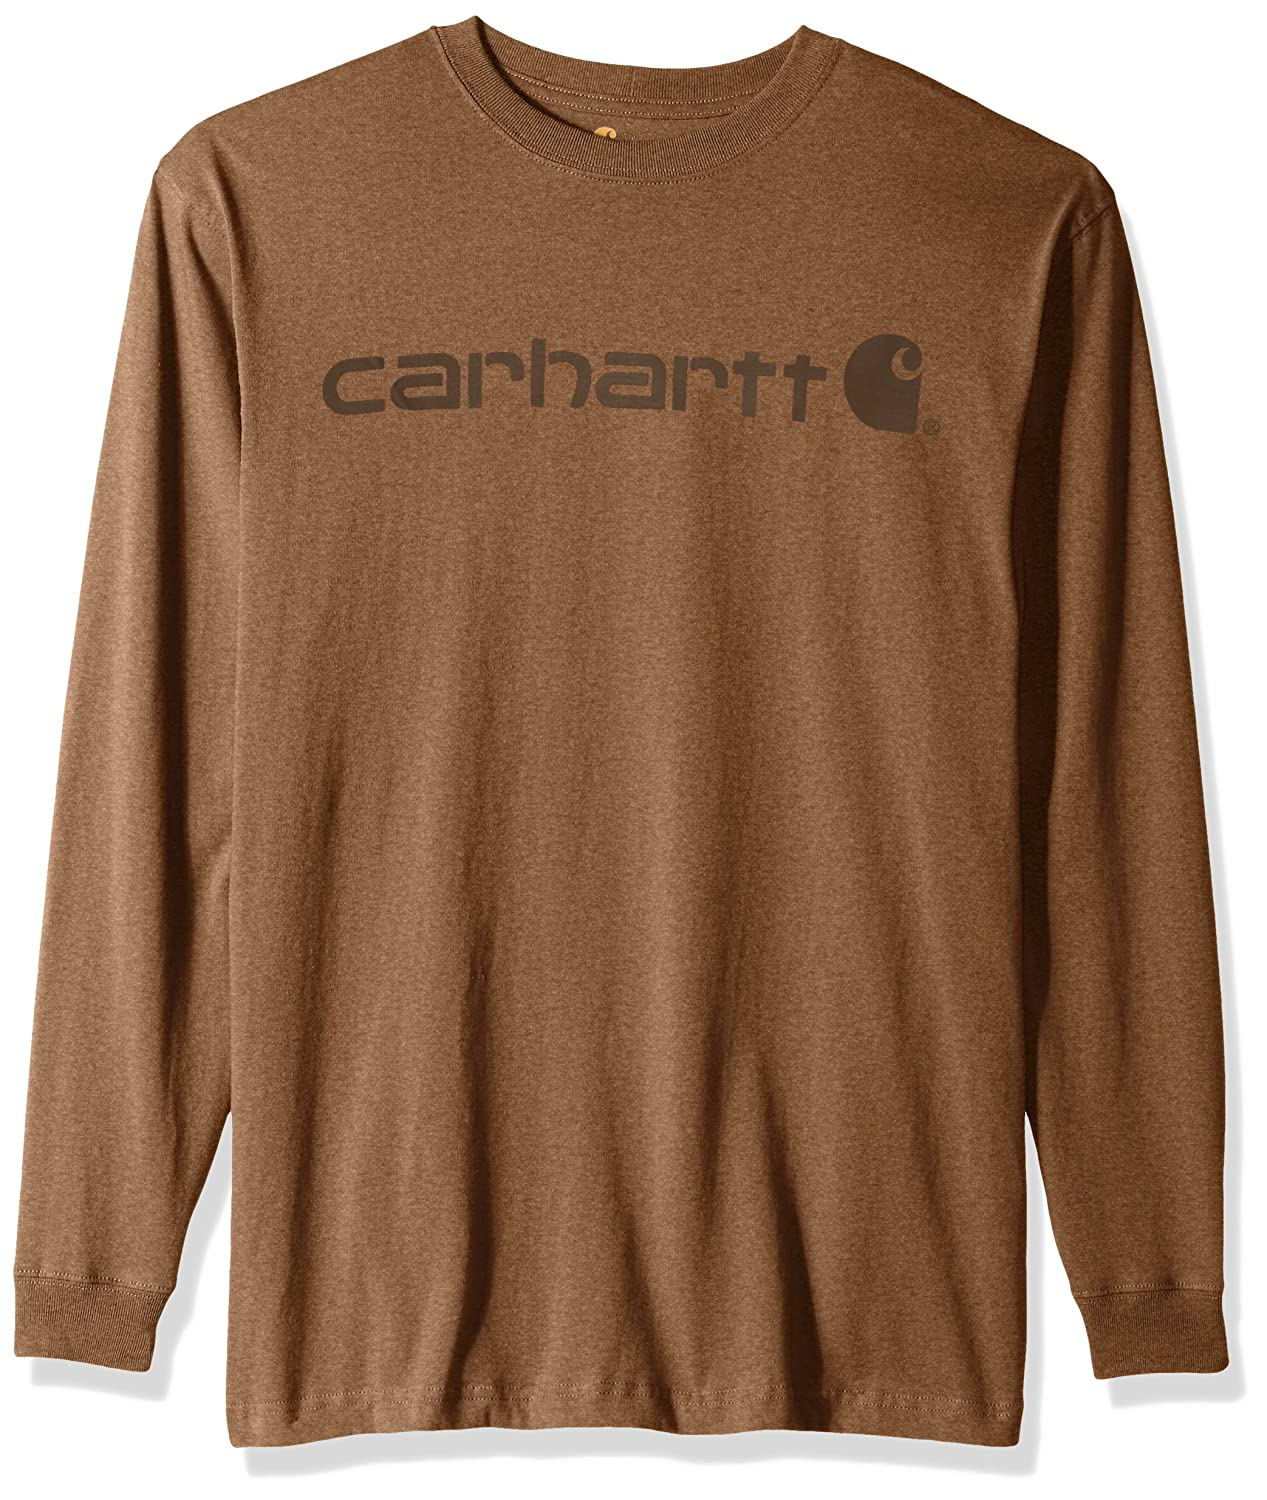 Carhartt Men's Signature Logo Long Sleeve T-Shirt Carhartt Sportswear - Mens K298-219